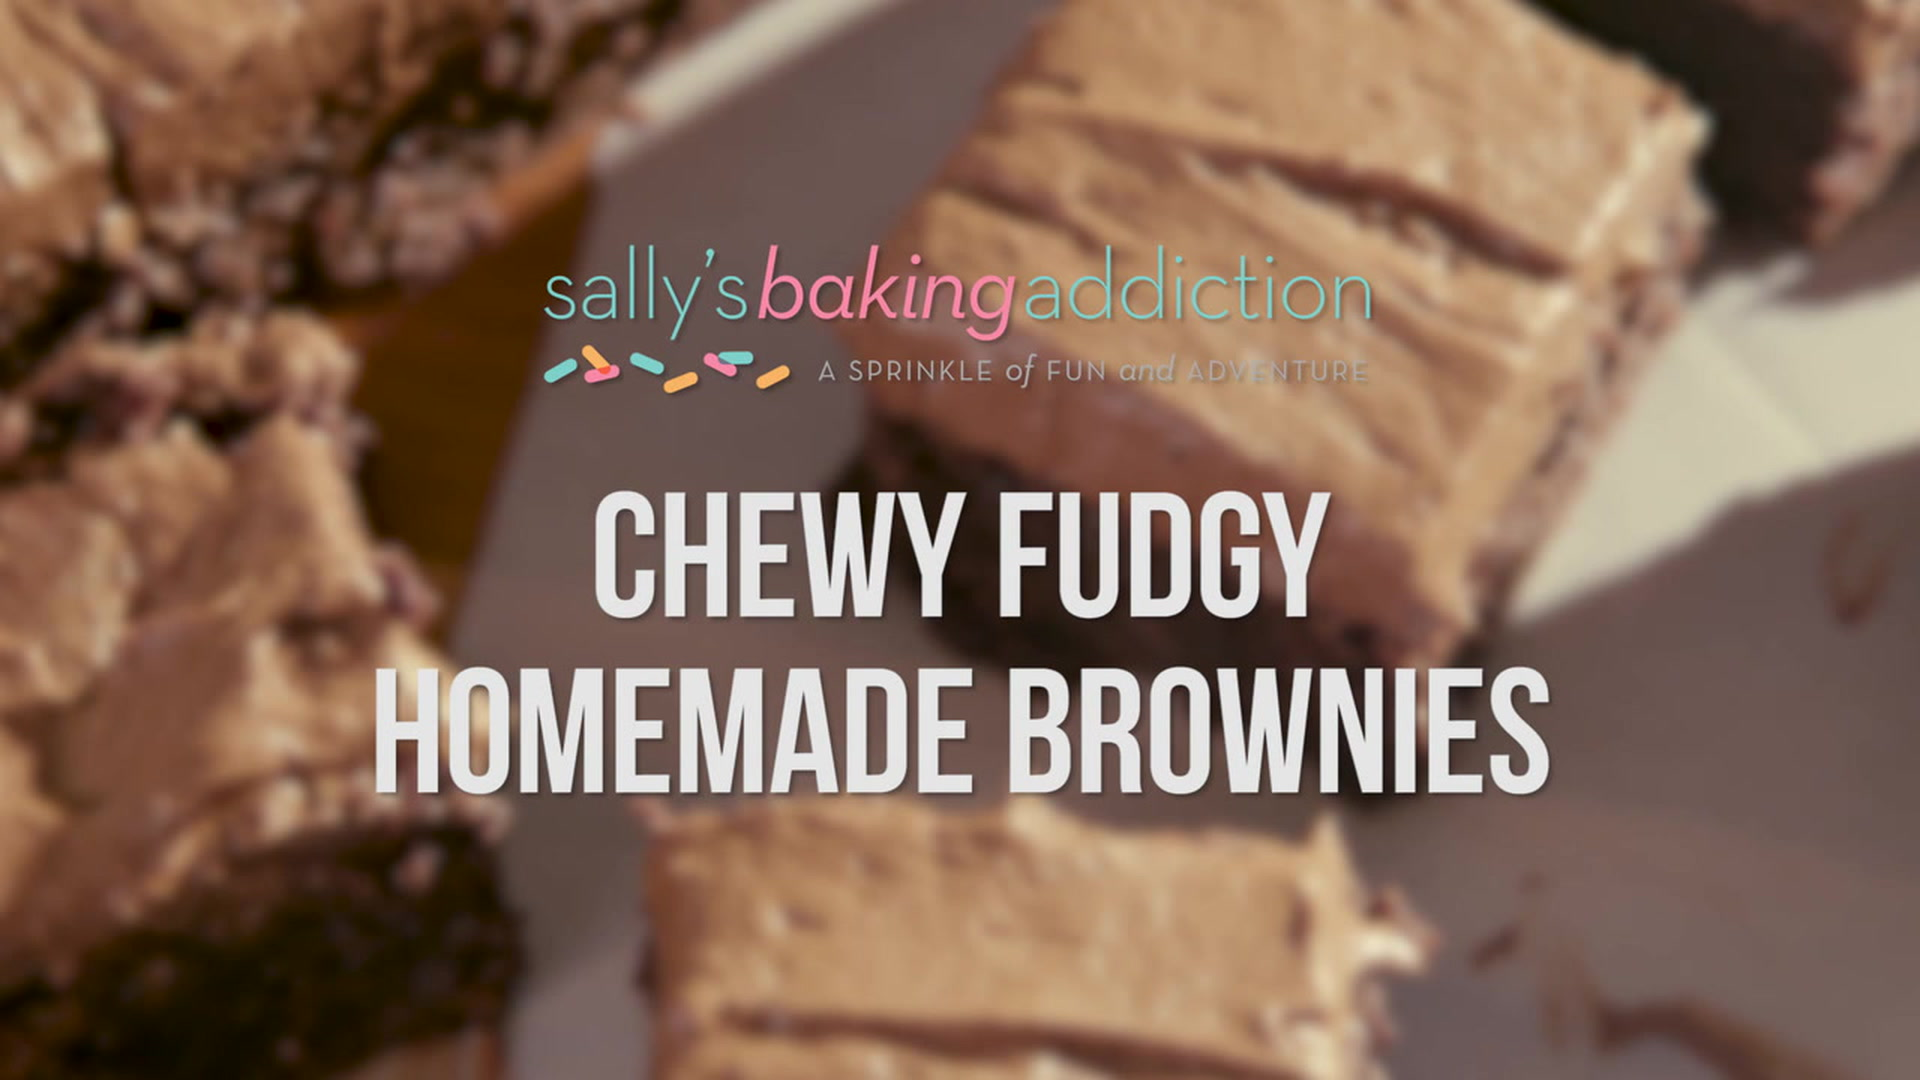 Chewy Fudgy Homemade Brownies. - Sallys Baking Addiction